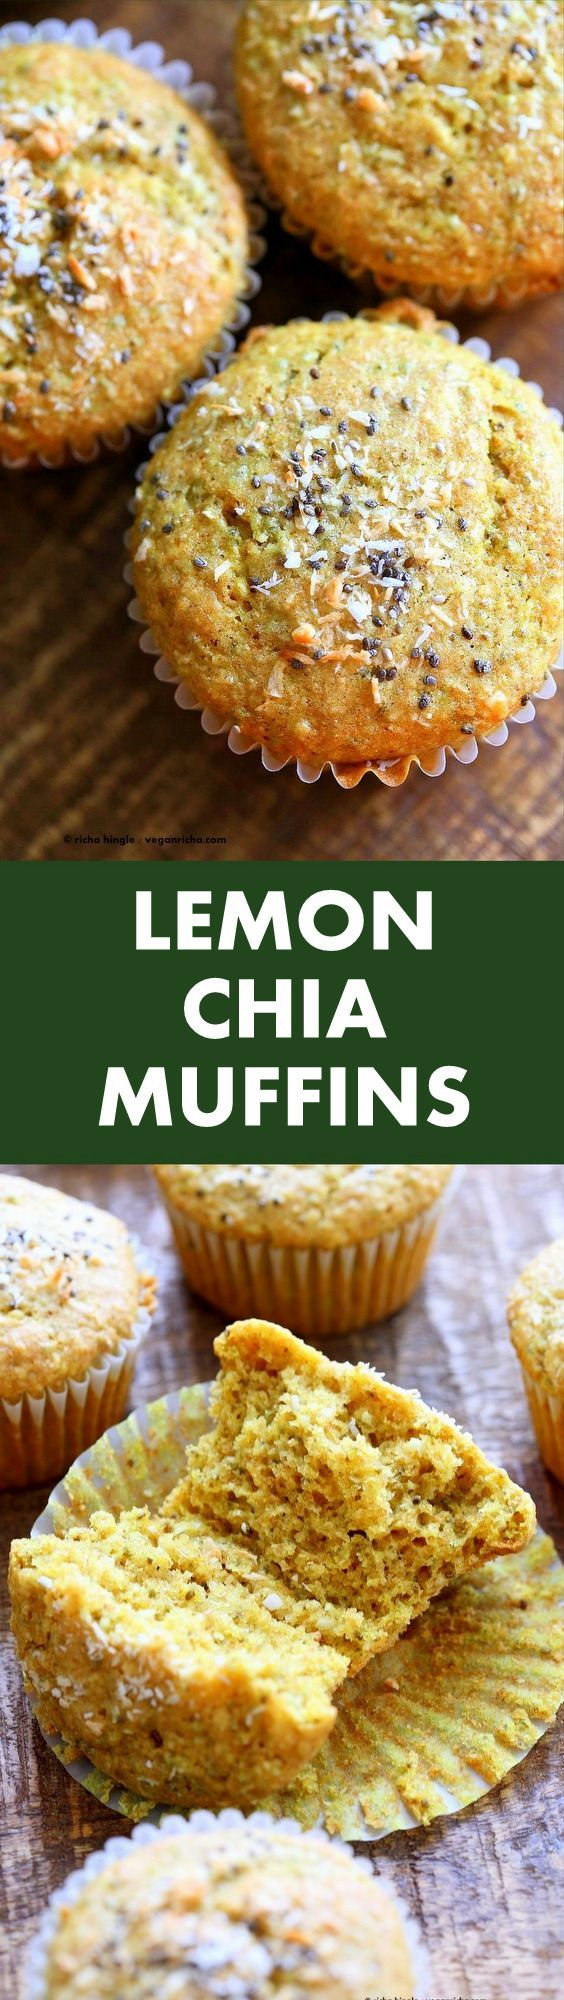 Lemon Coconut Chia Muffins. Zesty Muffins with Lemon, chia seeds, coconut and Turmeric. 1 bowl 30 minute muffins. Vegan Soy-free Nut-free Oil-free Recipe  i think I would use quinoa or coconut flour instead